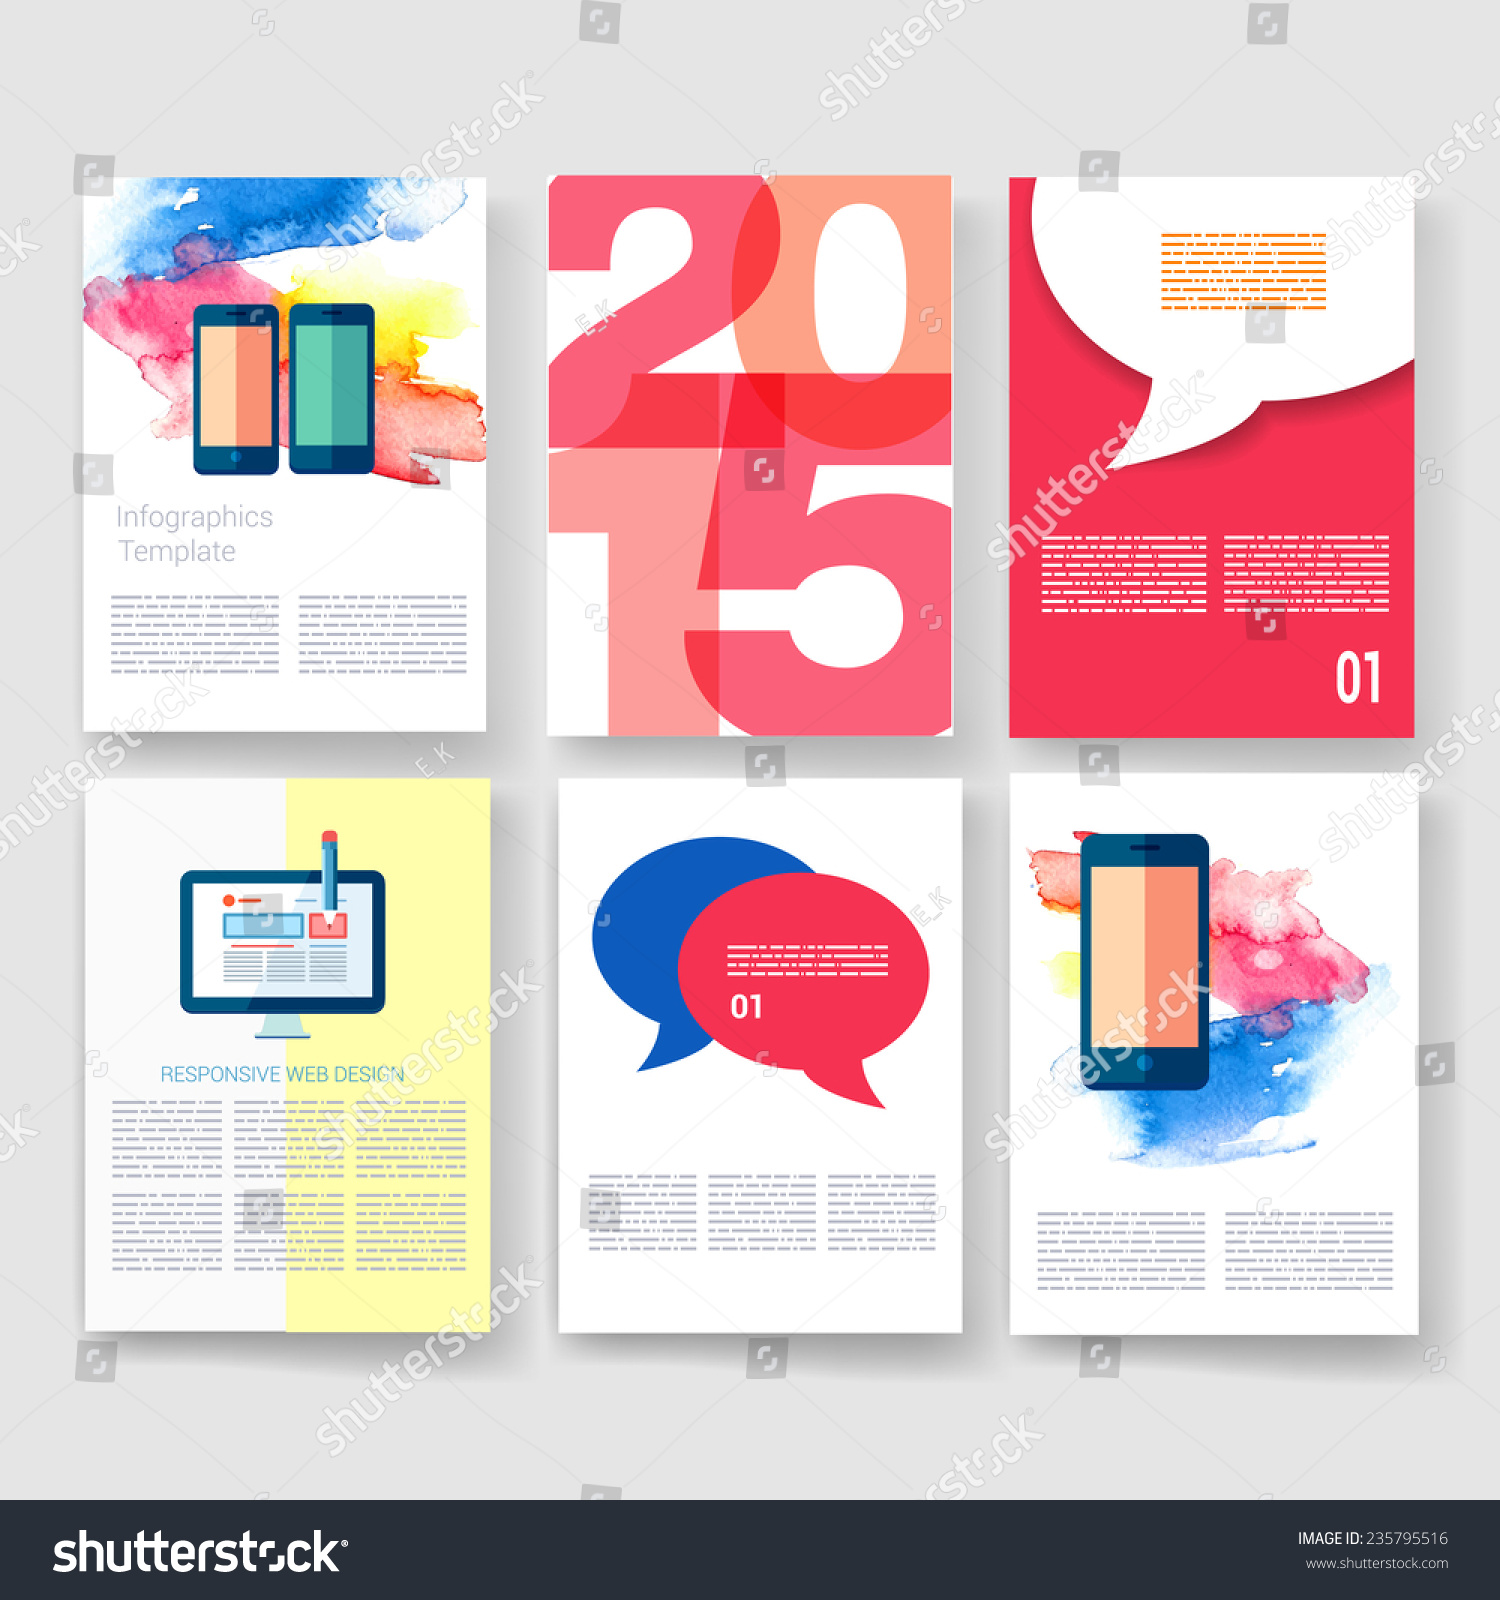 graphic design brochure templates - 1000 images about pre prensa on pinterest flat design